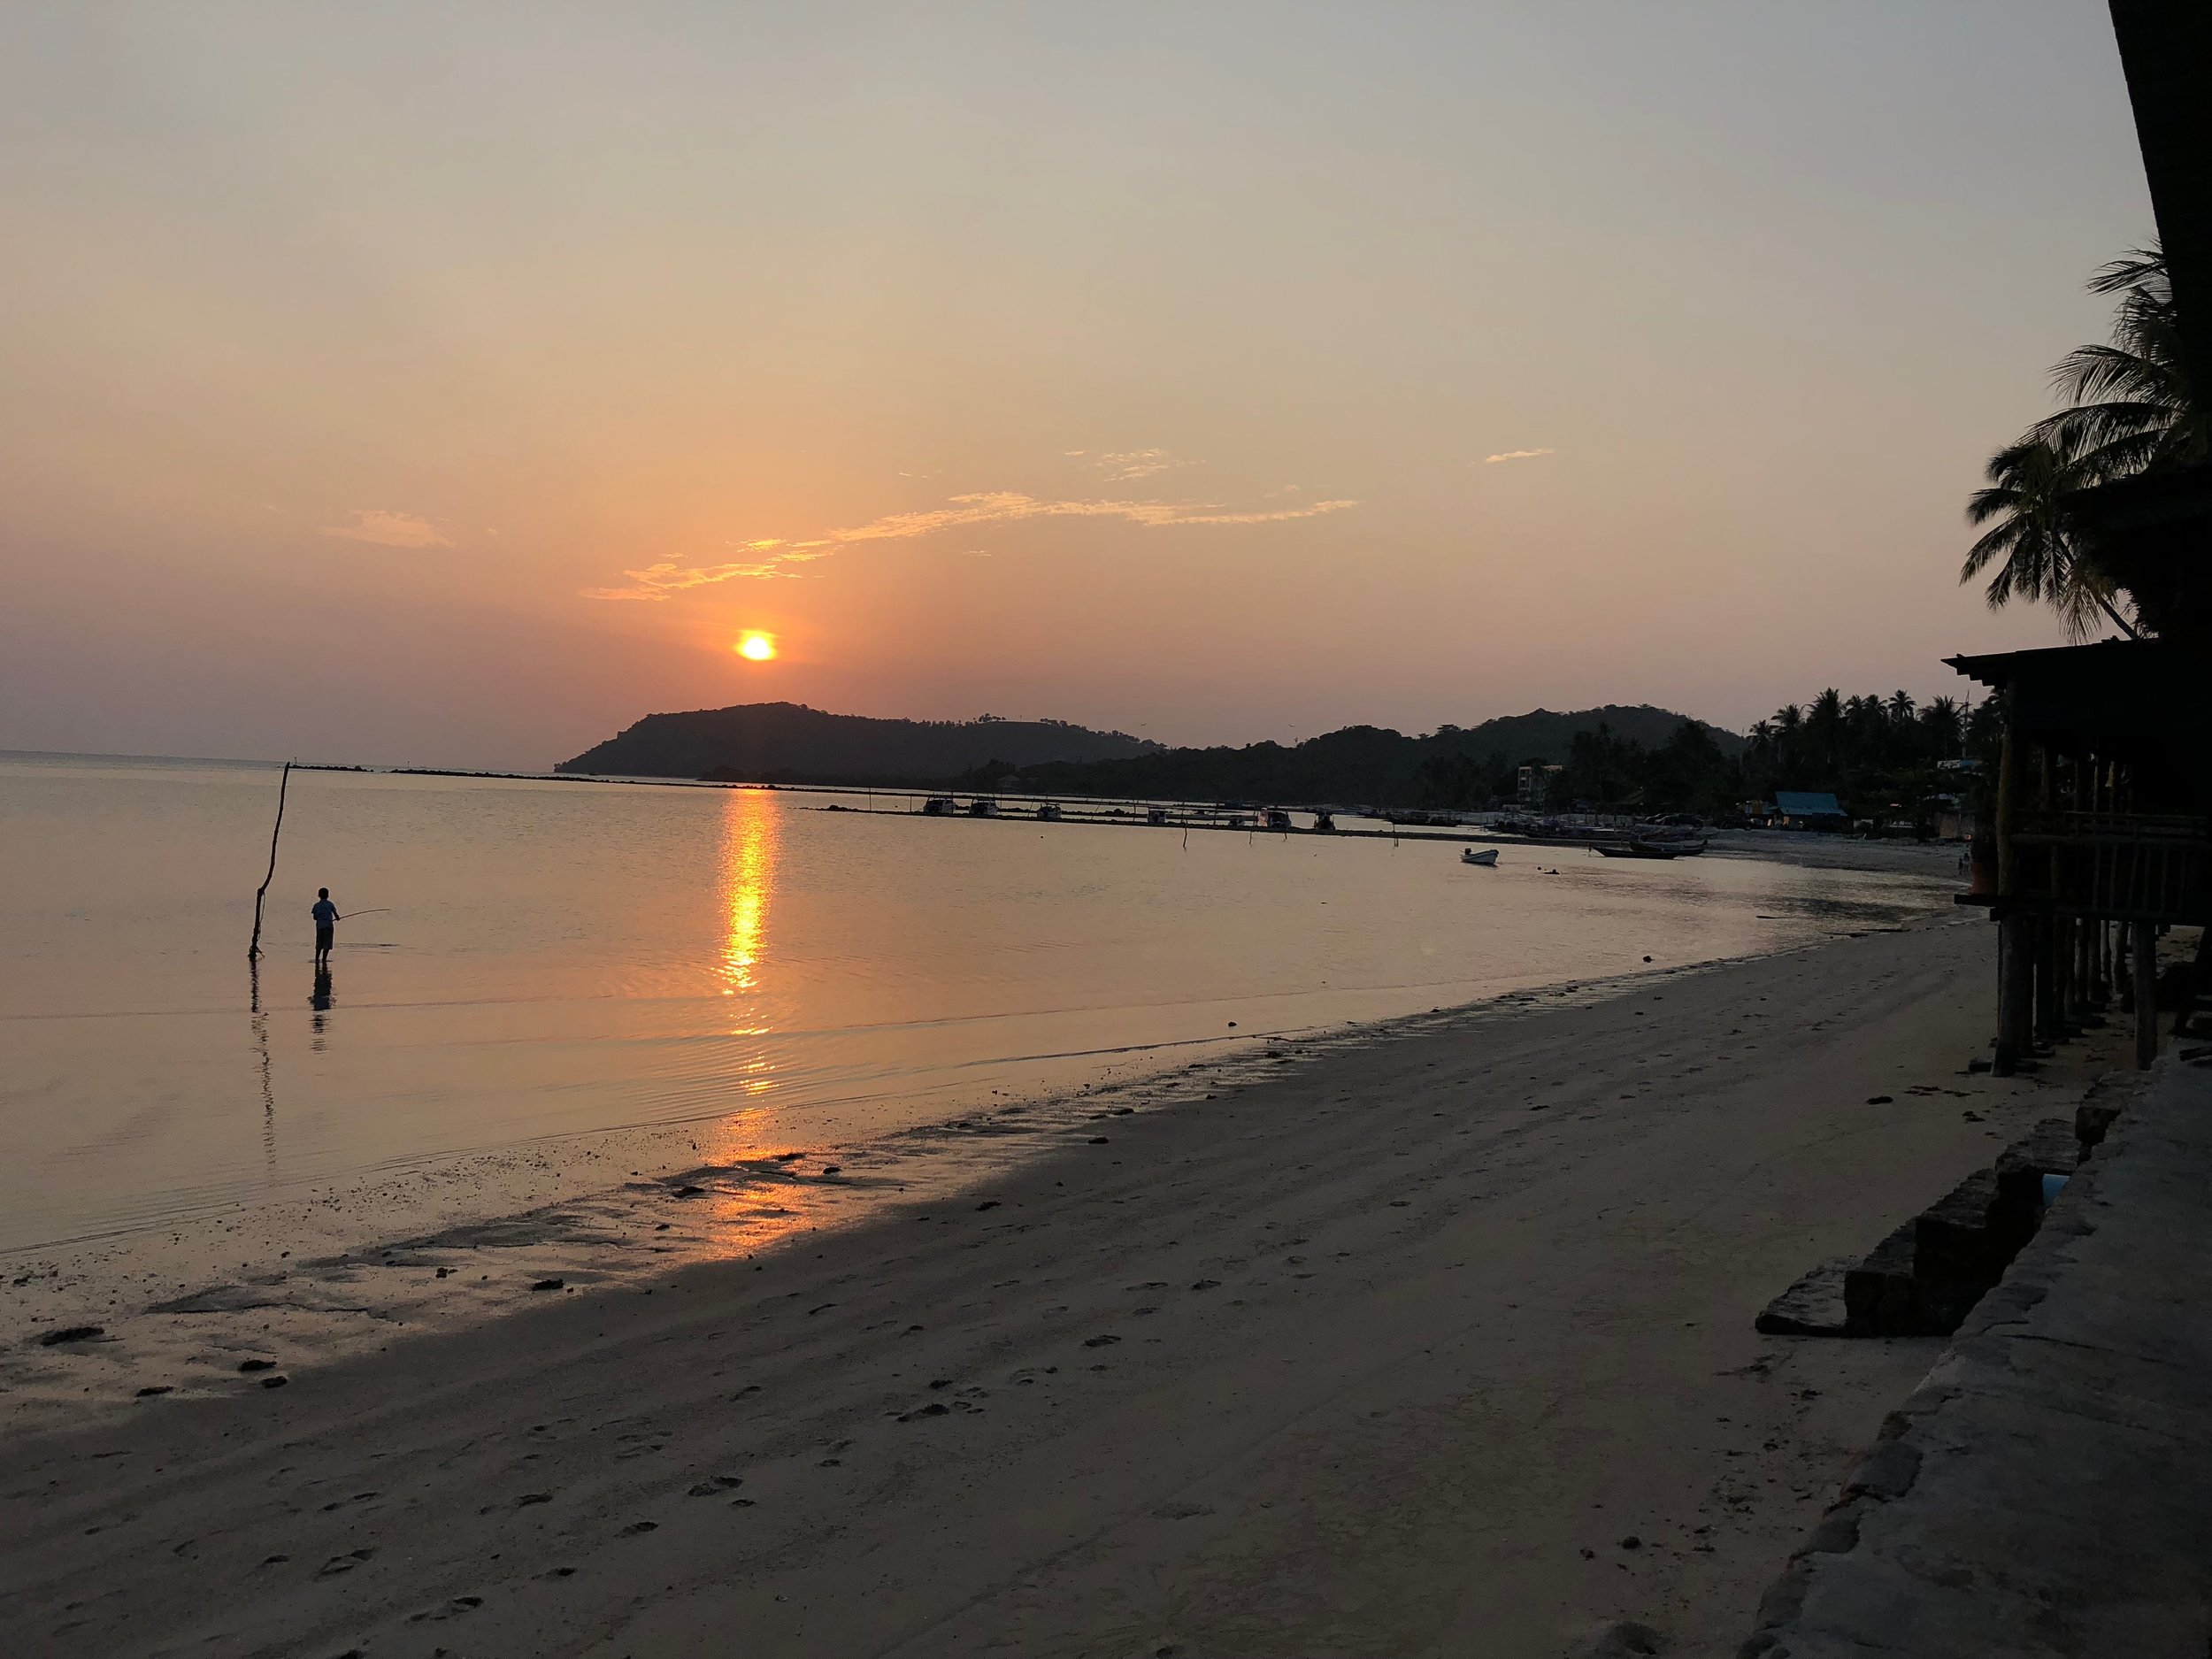 Our first sunset at Koh Samui